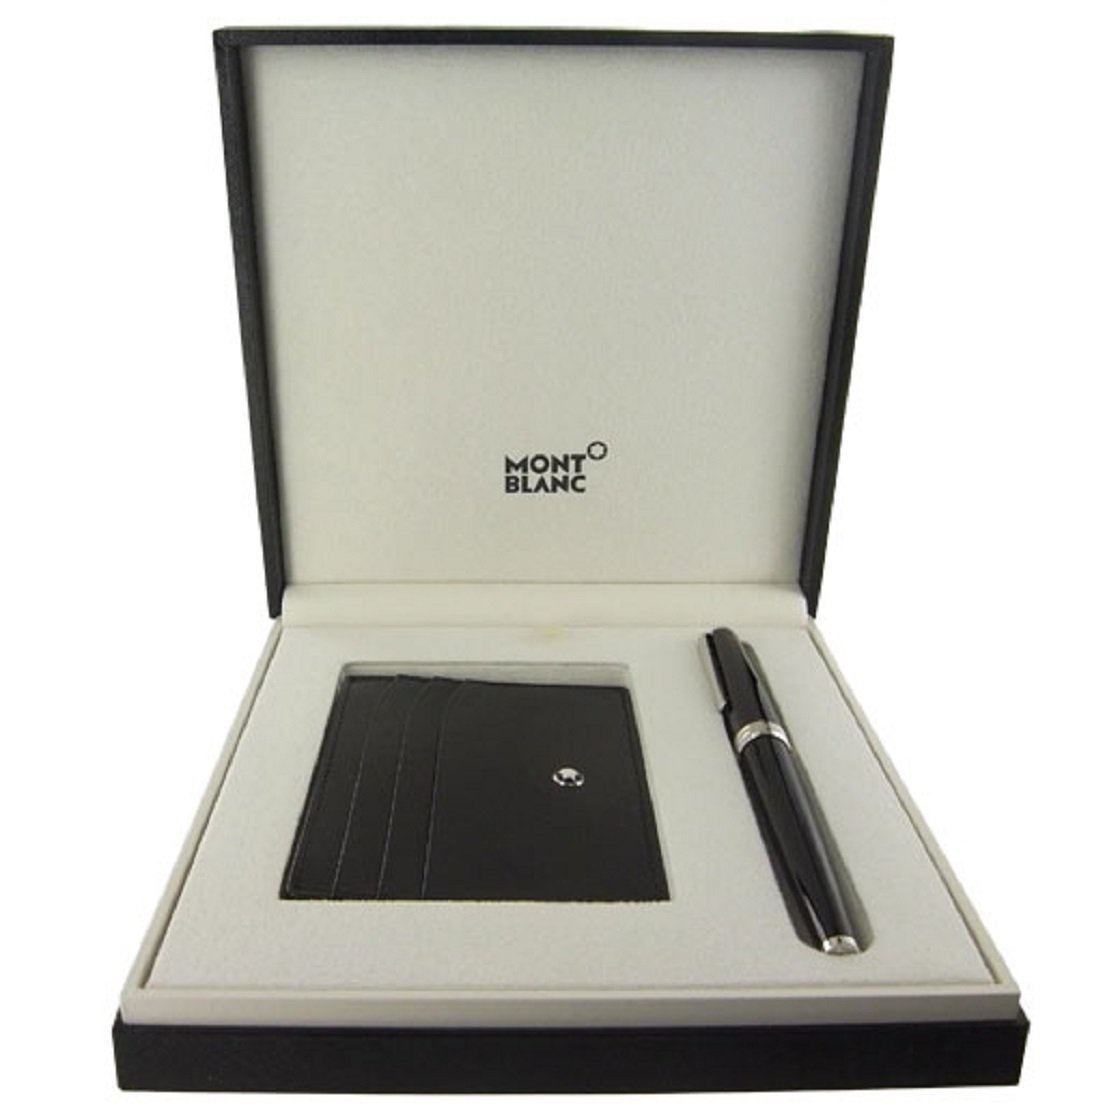 Montblanc Set with Montblanc PIX Black Rollerball and Black Pocket Holder 6cc 116118 by MONTBLANC (Image #2)